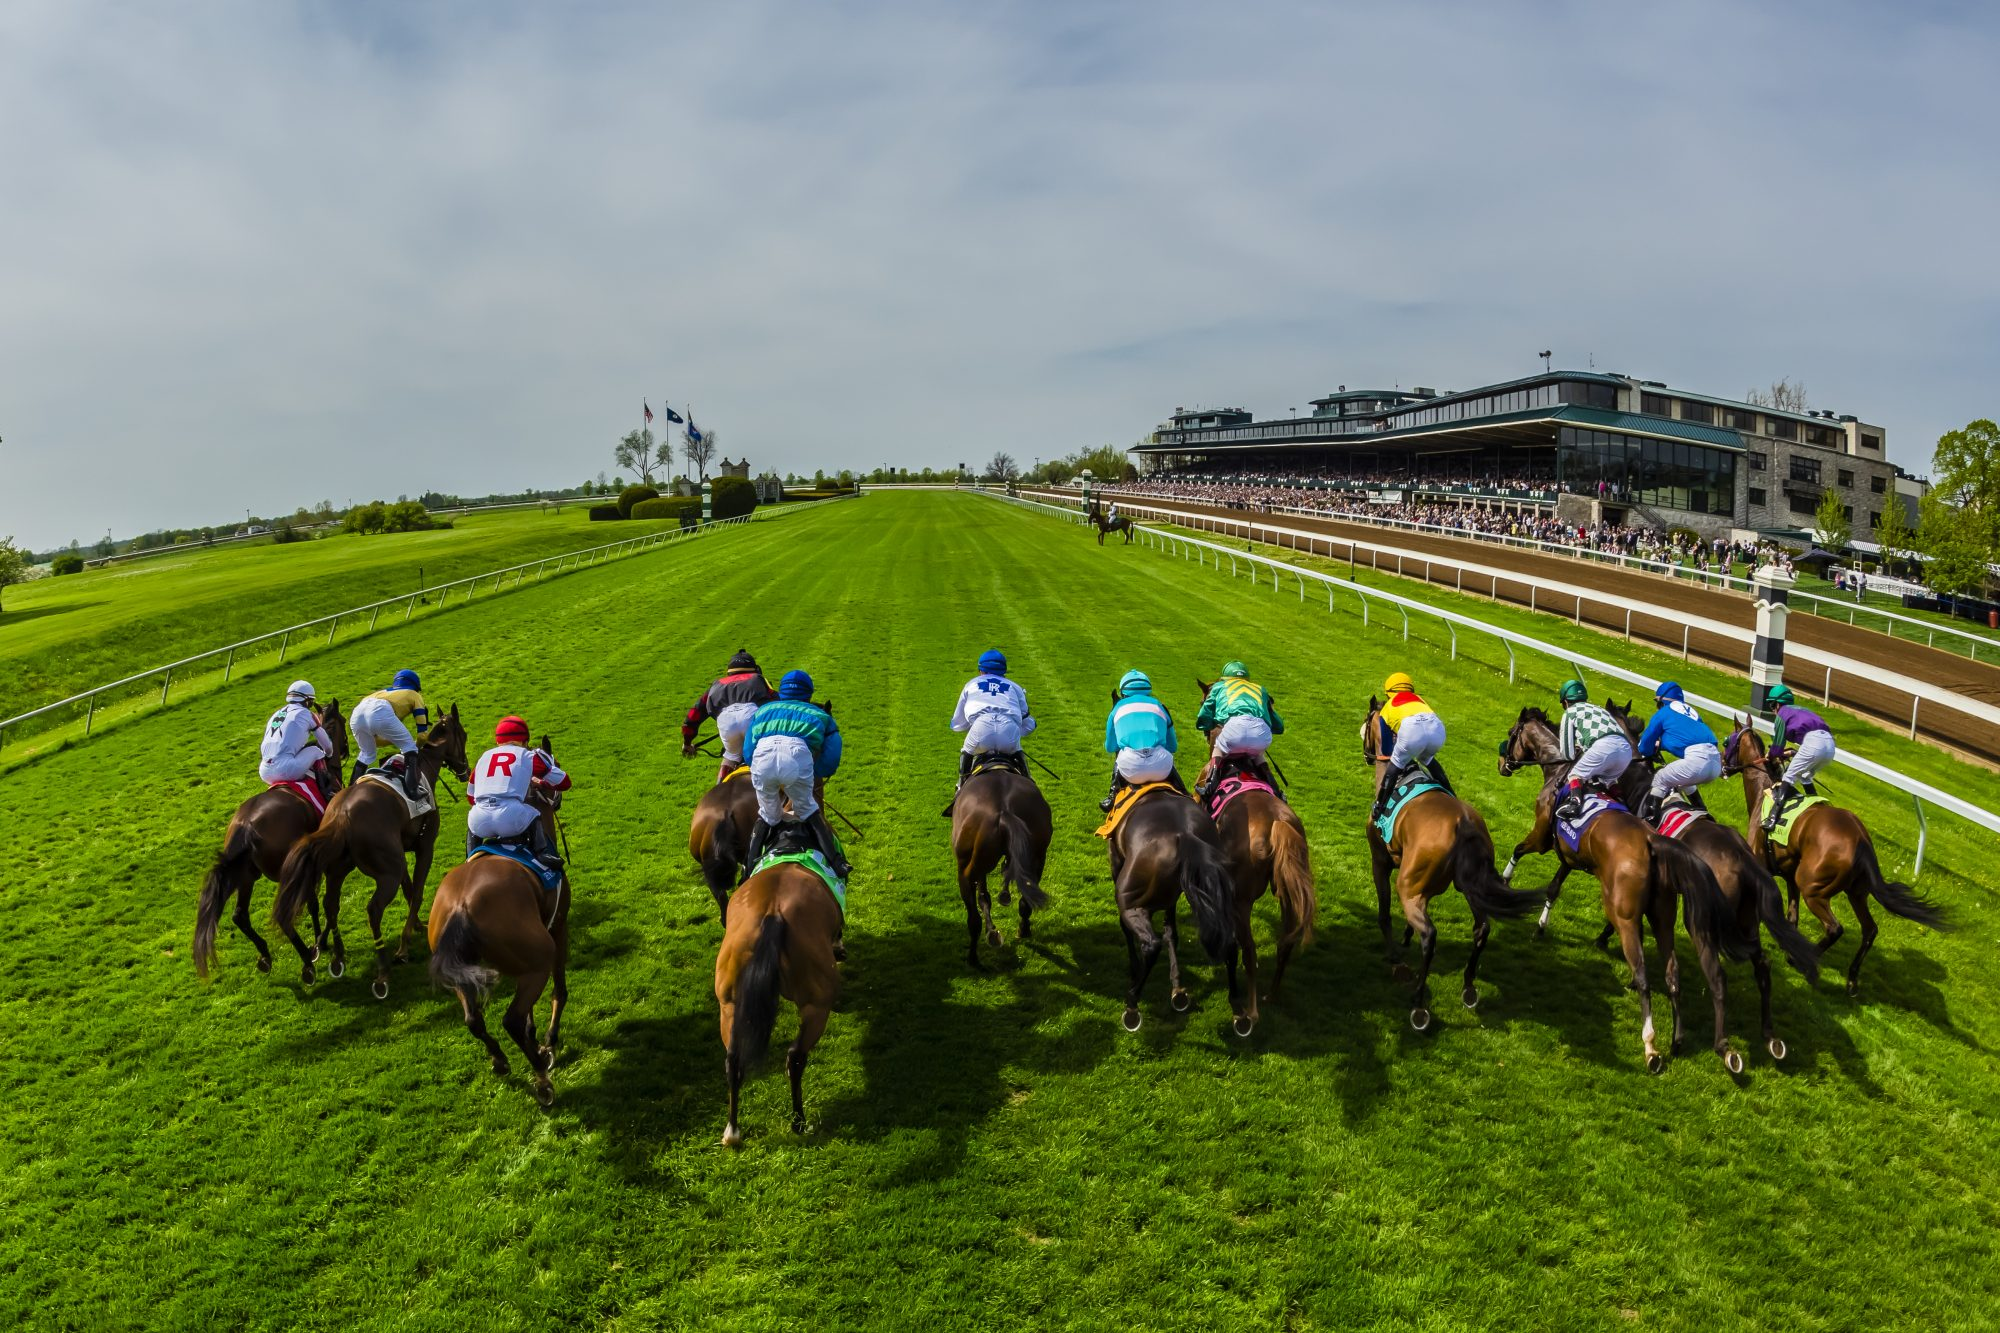 Lexington Keeneland Race Course